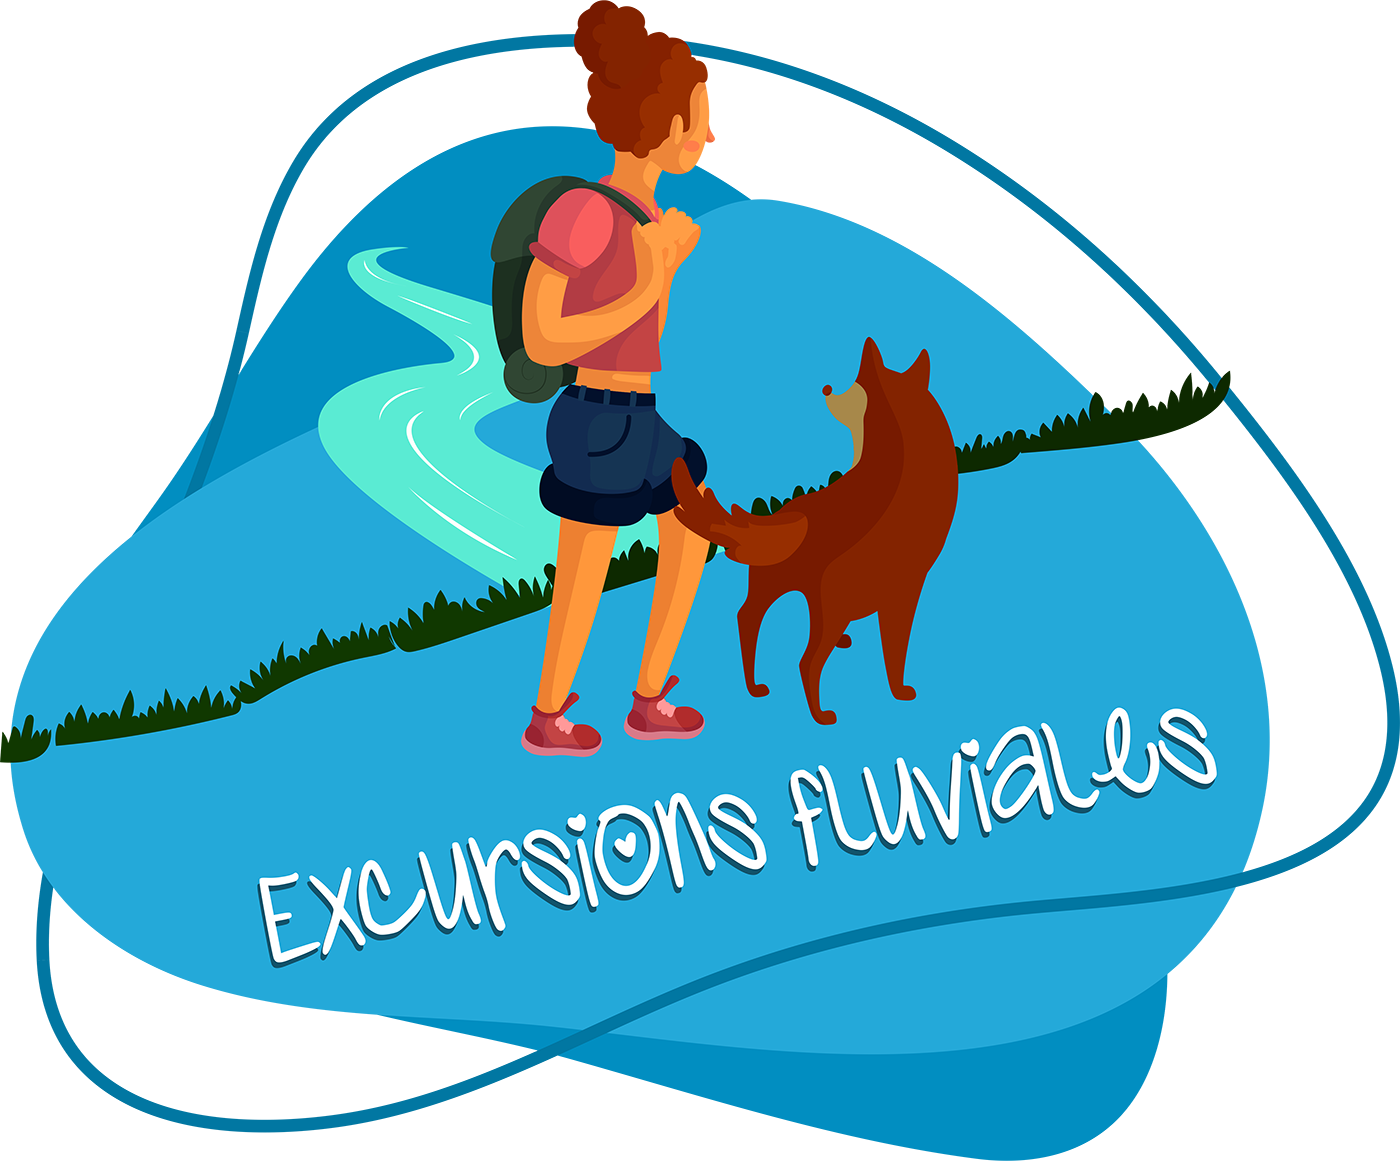 Excursions fluviales